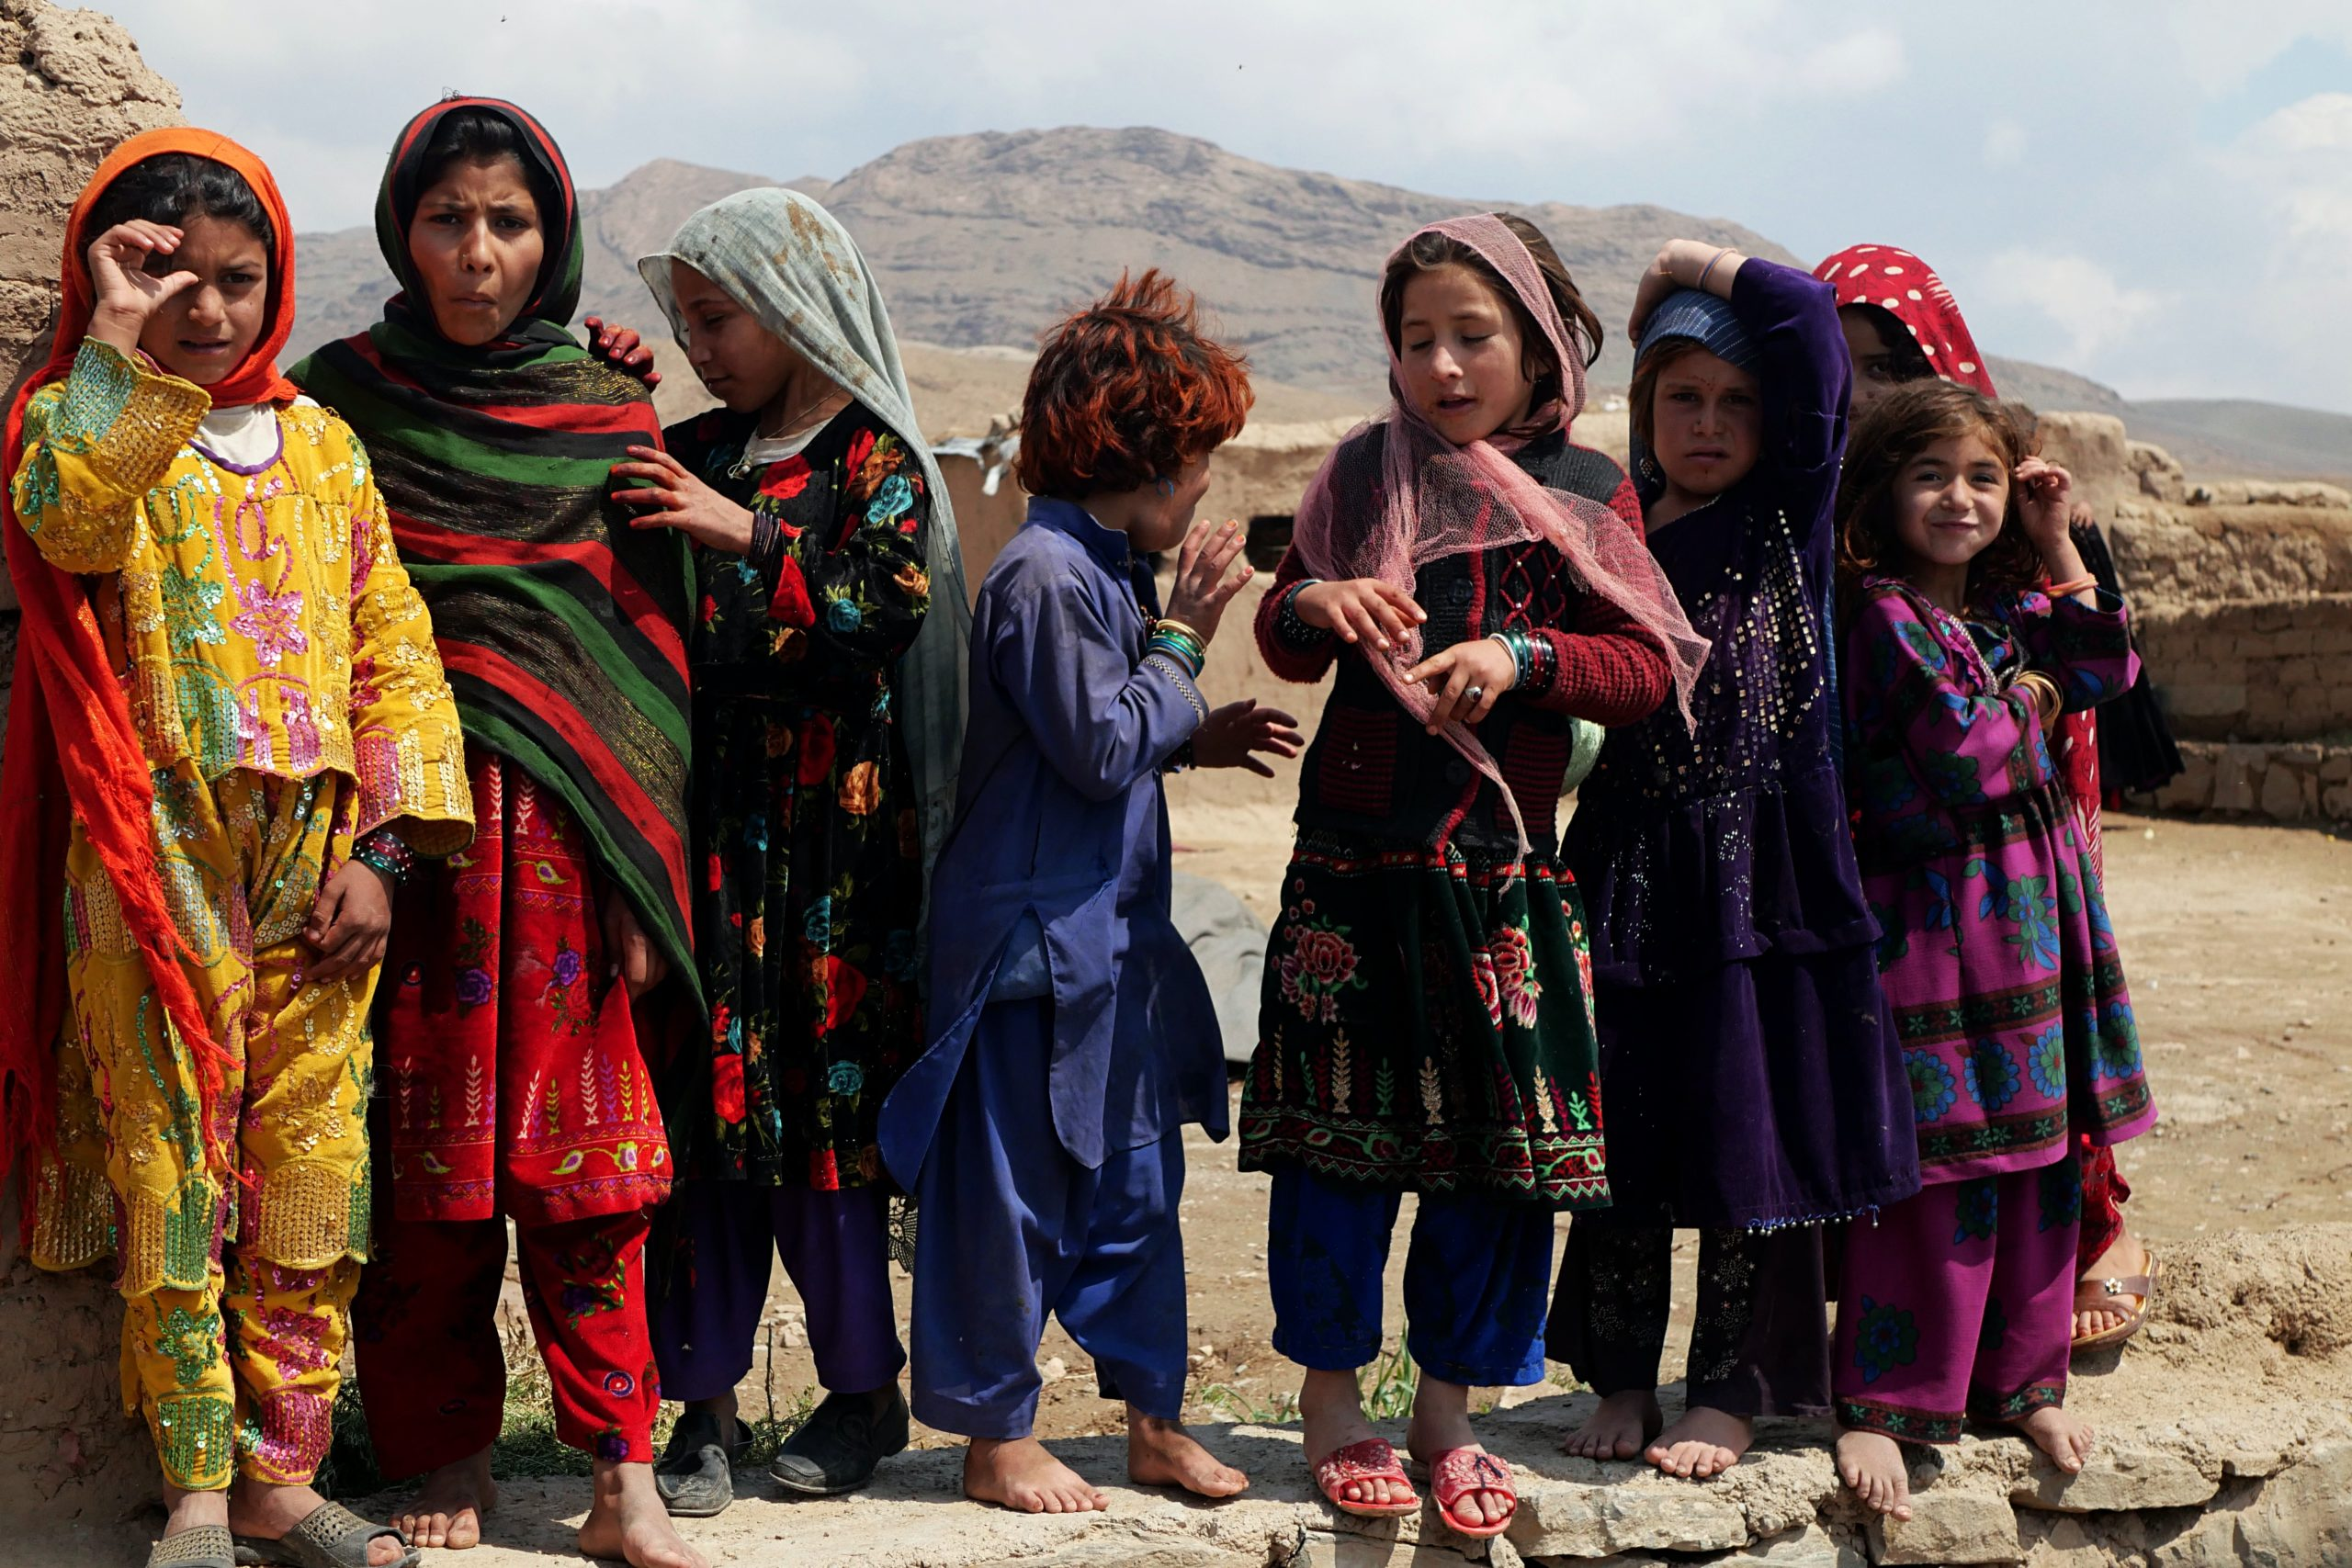 Afghanistan drought refugees IDP Herat